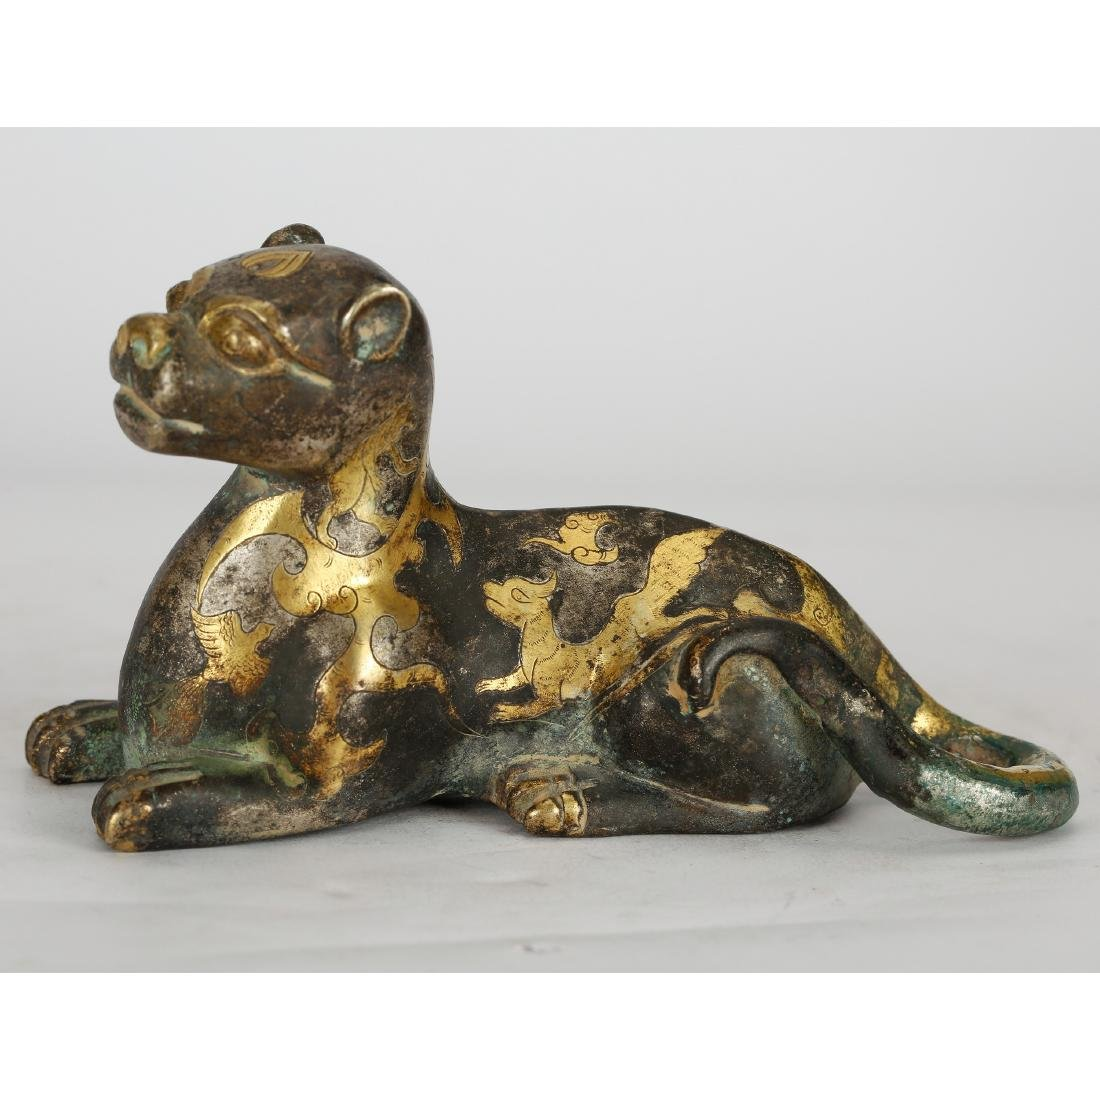 CHINESE ARCHAIC BRONZE FIGURE OF COUGAR